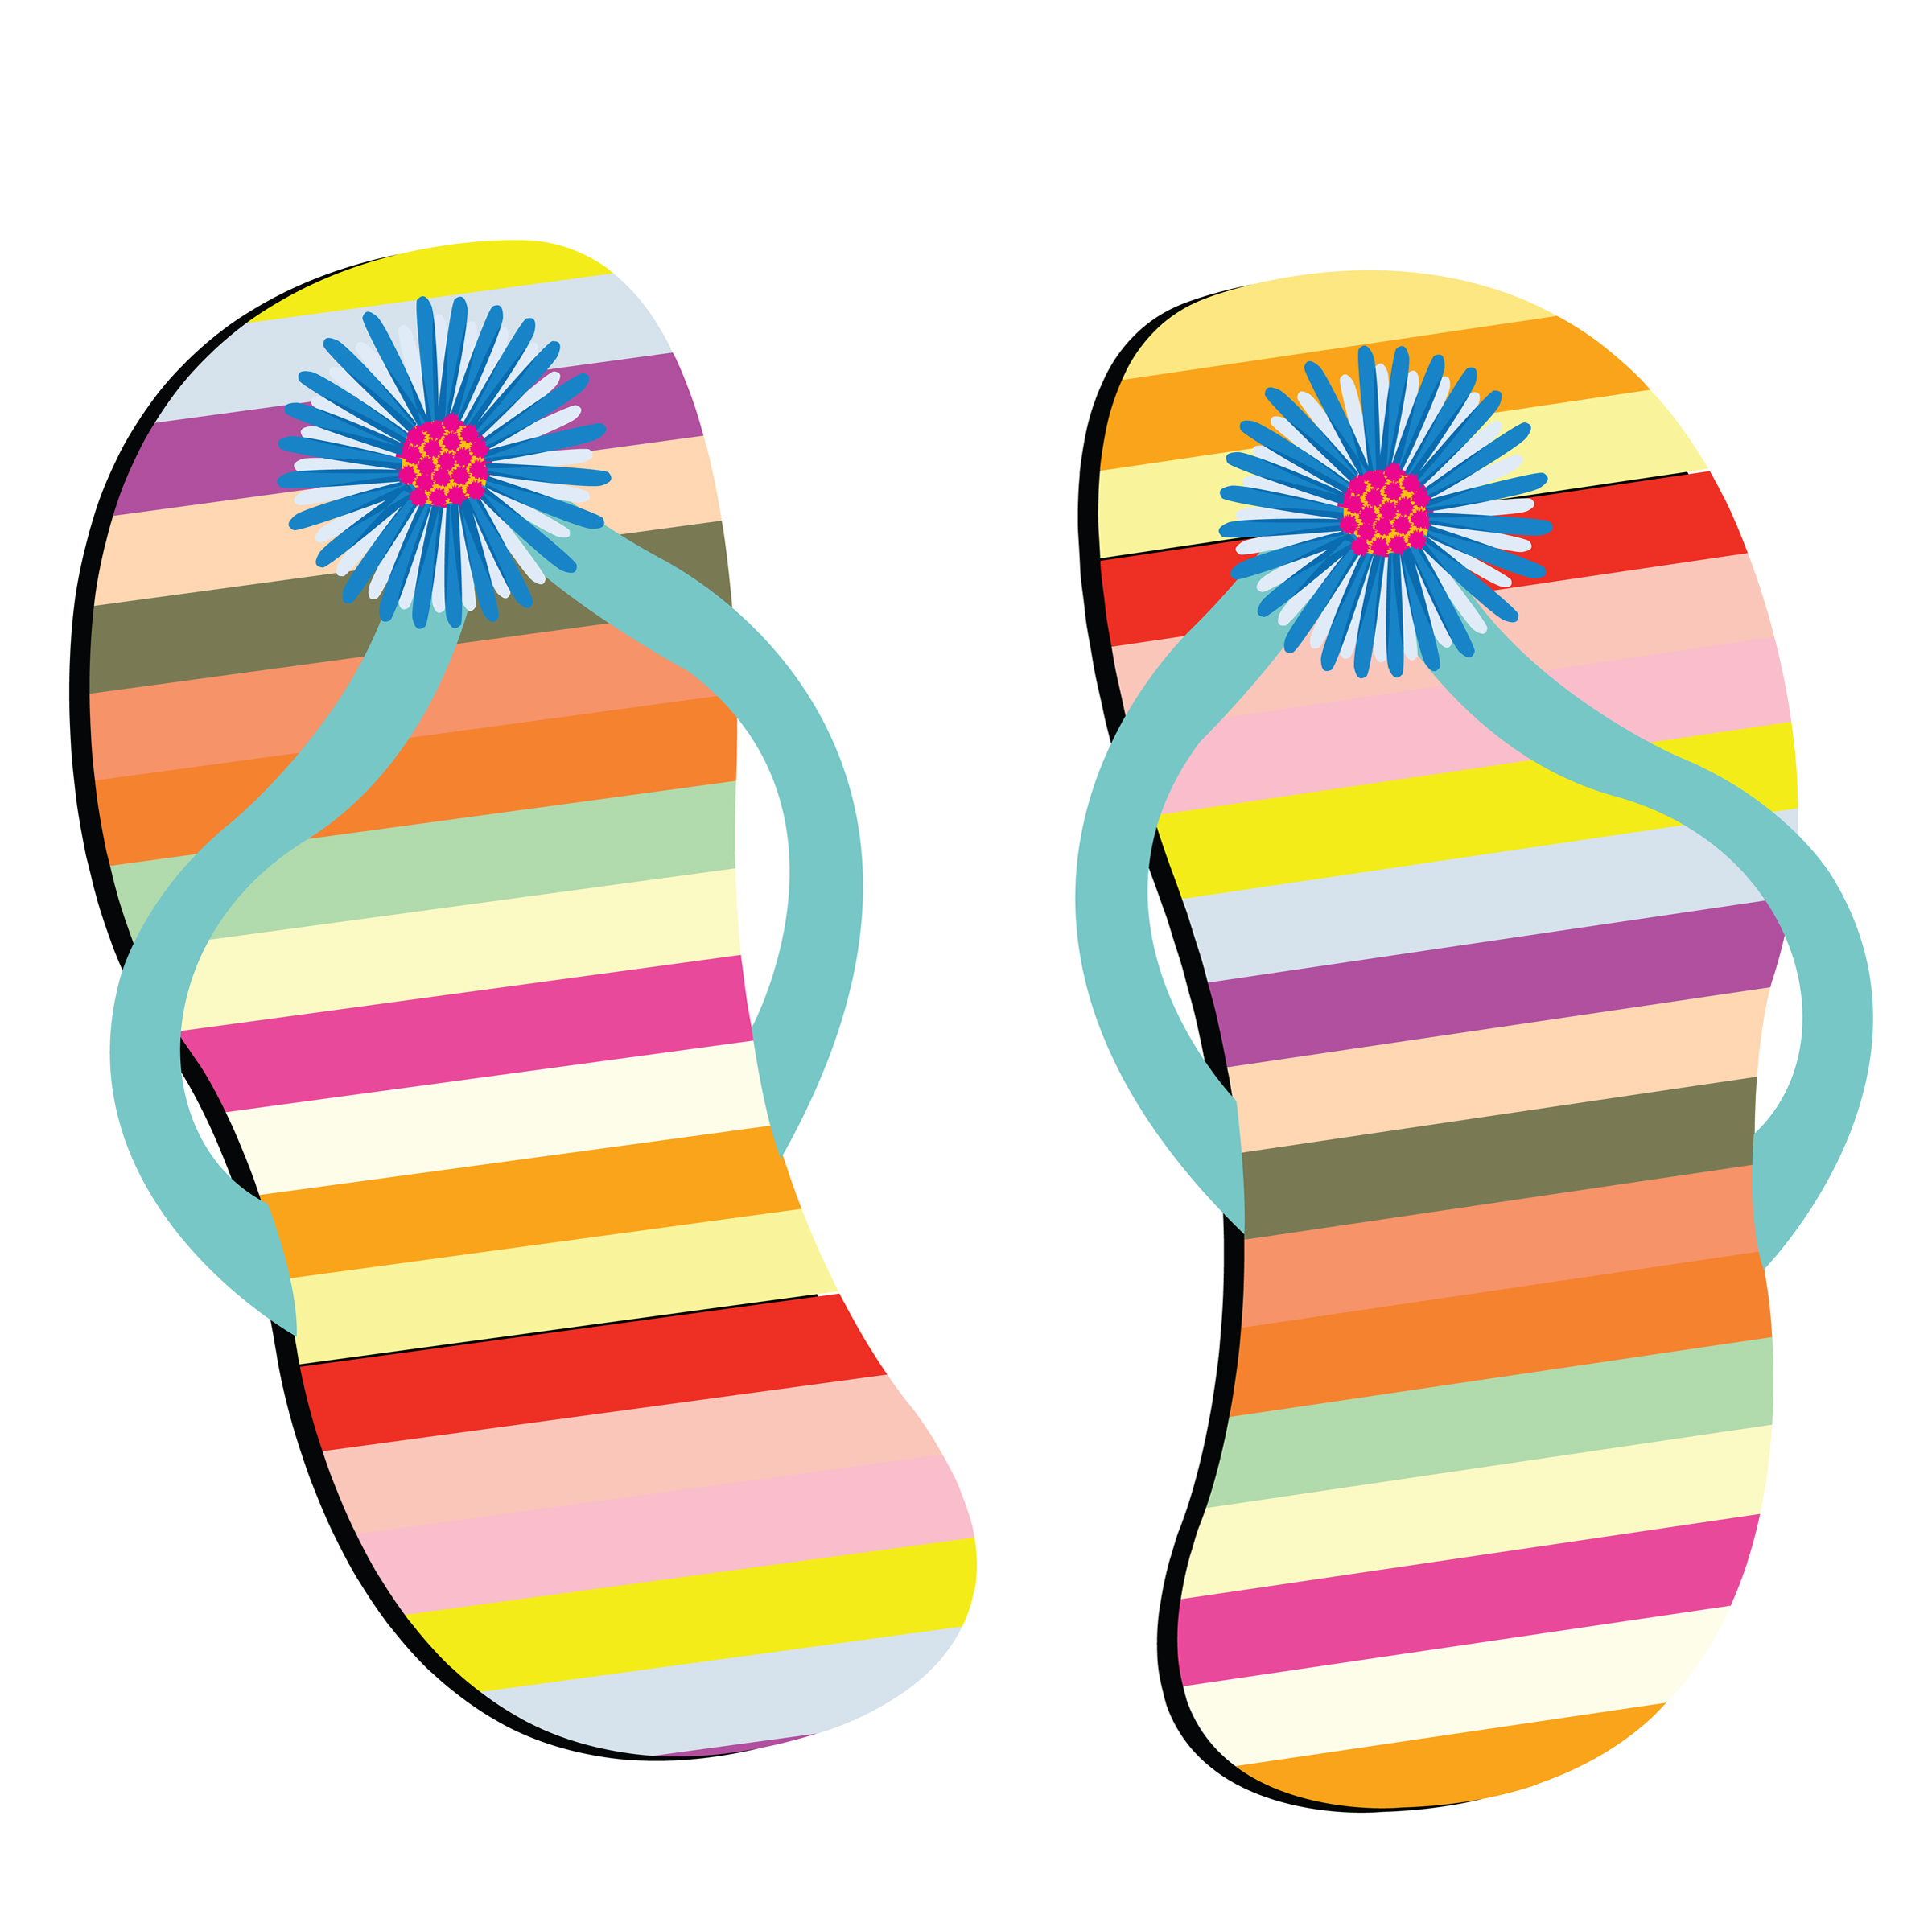 Beach slippers clipart image transparent Free Beach Sandals Cliparts, Download Free Clip Art, Free Clip Art ... image transparent